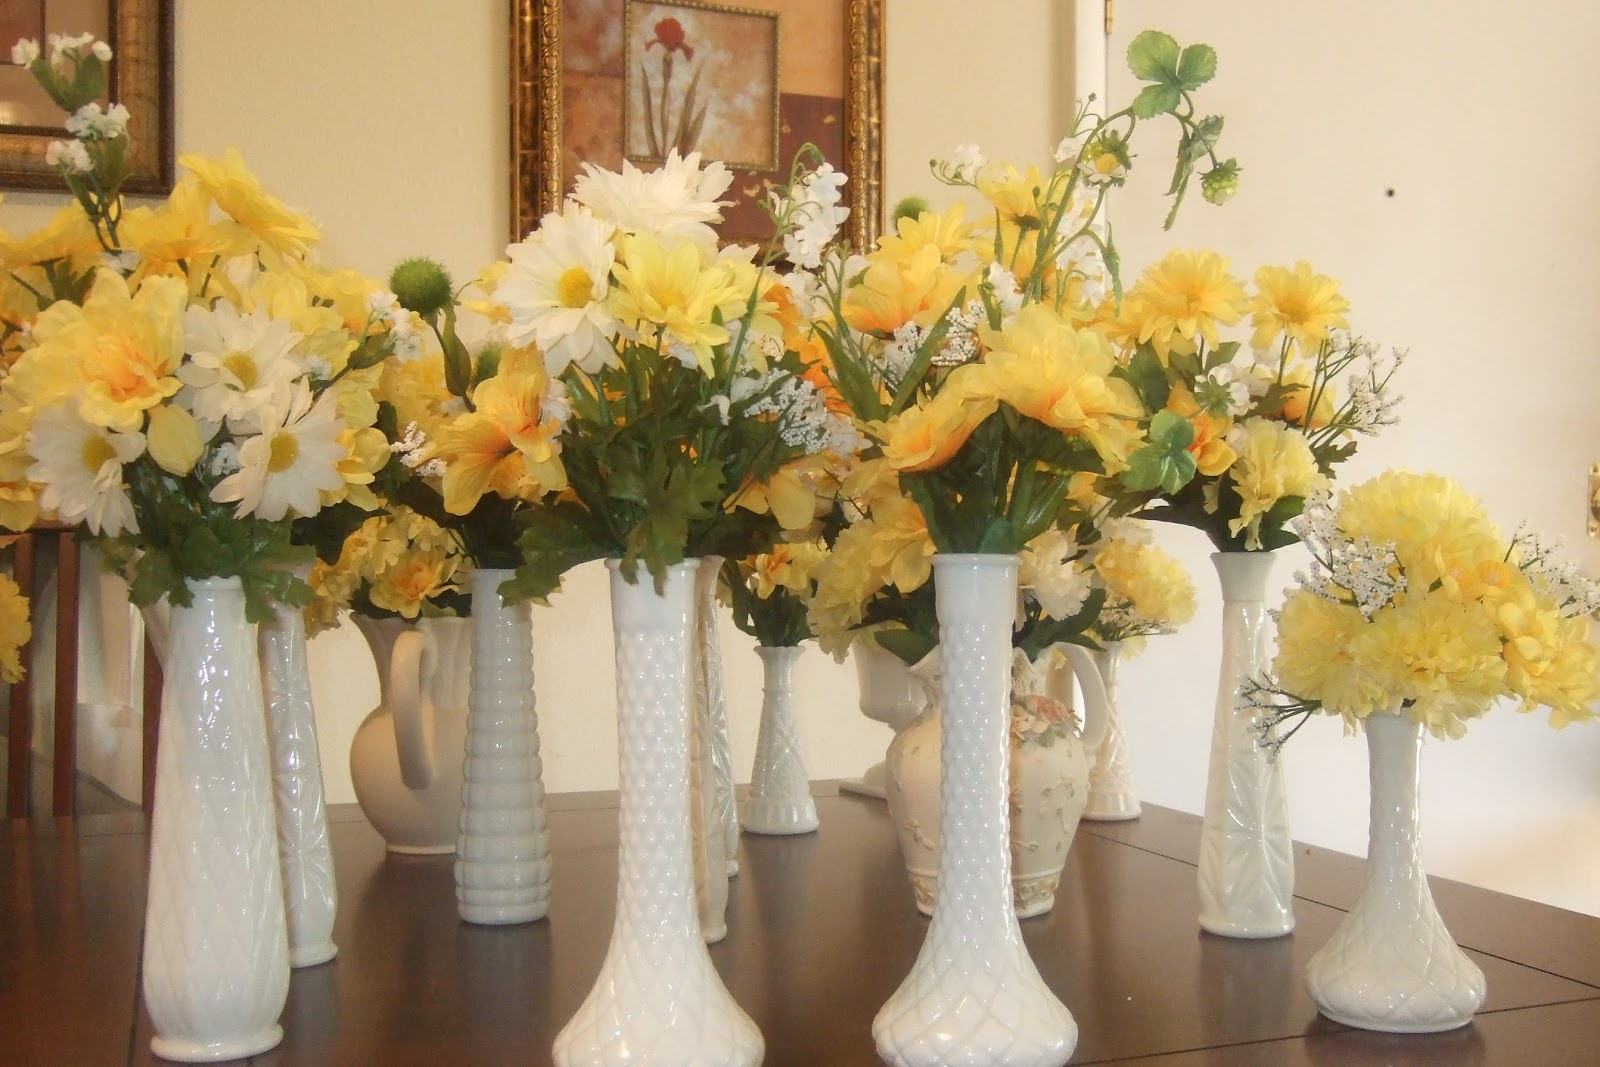 Ana silk flowers ideas milk glass wedding table it is just gorgeous its so chic reviewsmspy